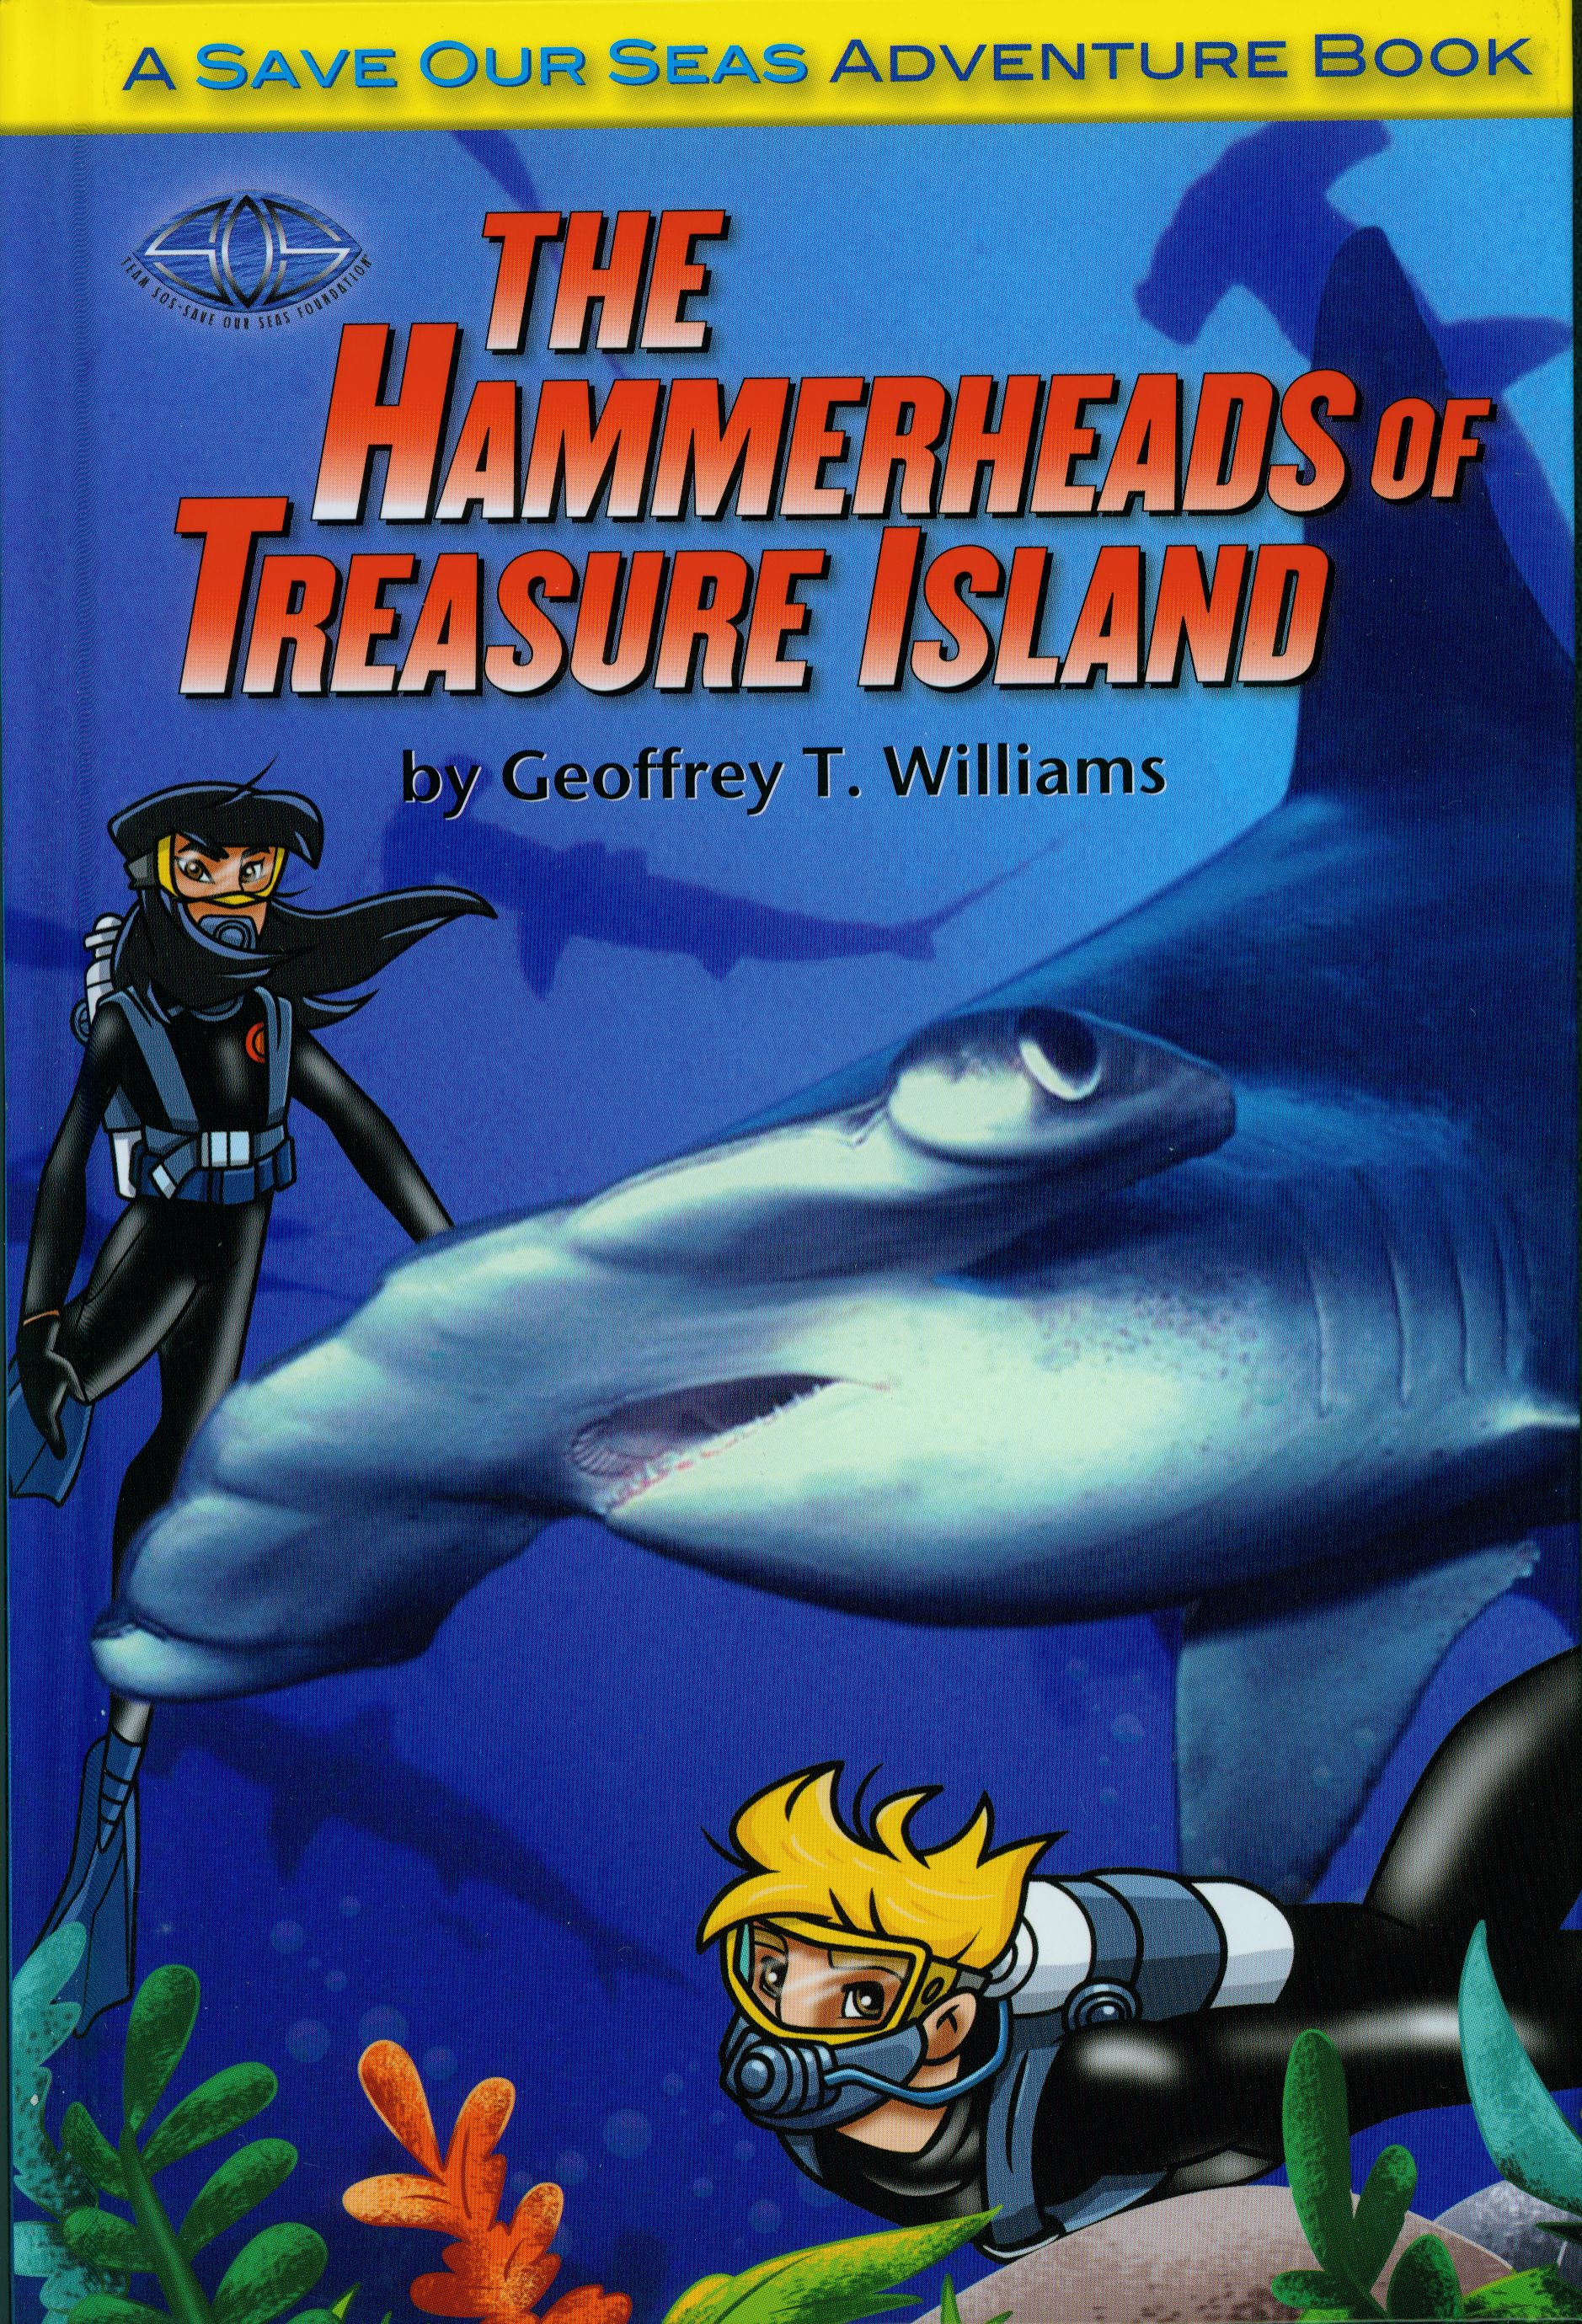 The Hammerheads of Treasure Island